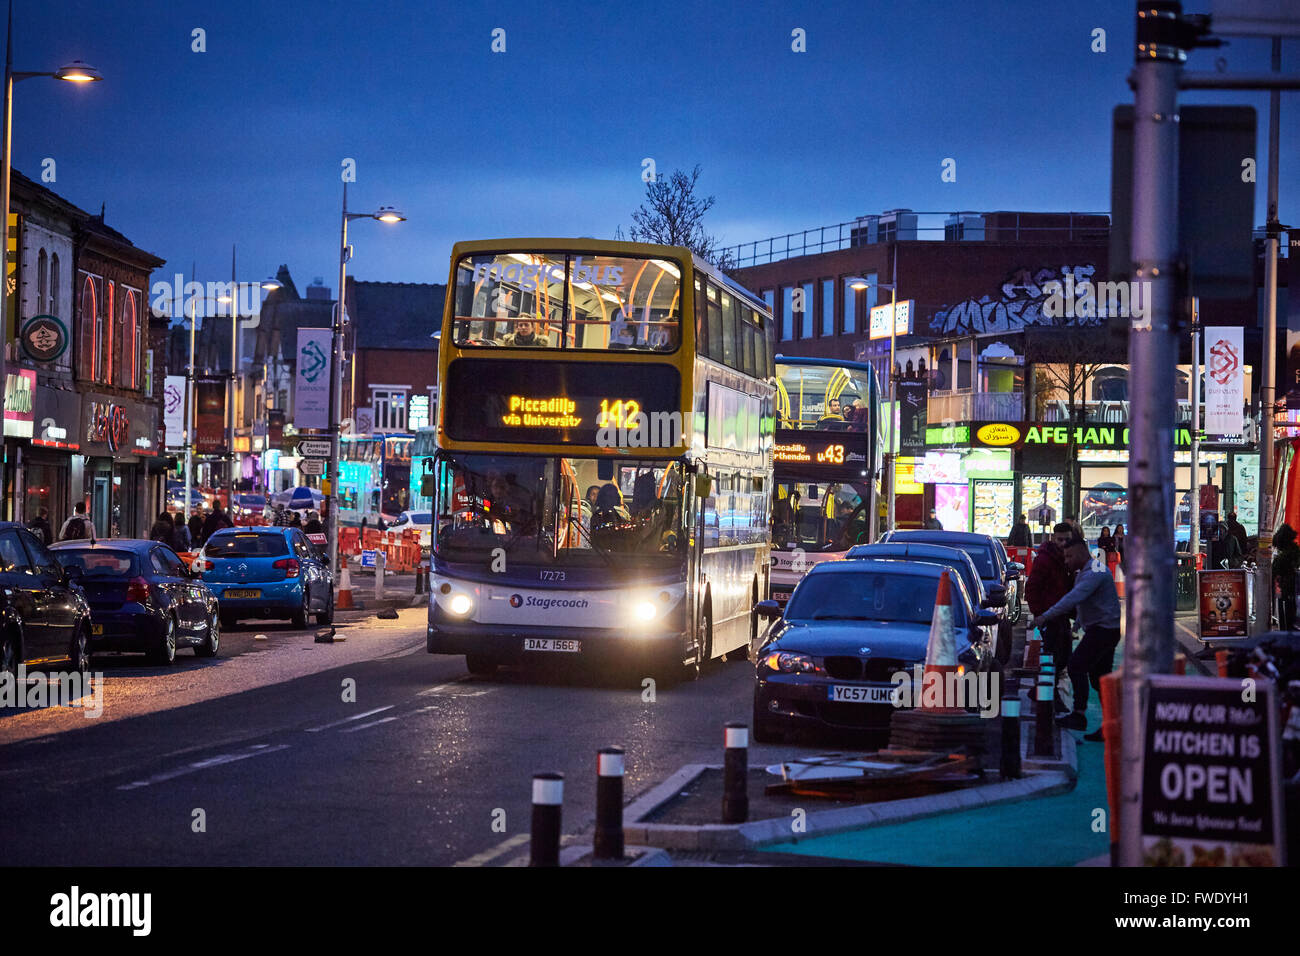 Rusholme curry mile willows road   Night dark evening 142 43 Stagecoach bus busy parked cars restaurants Restaurant - Stock Image